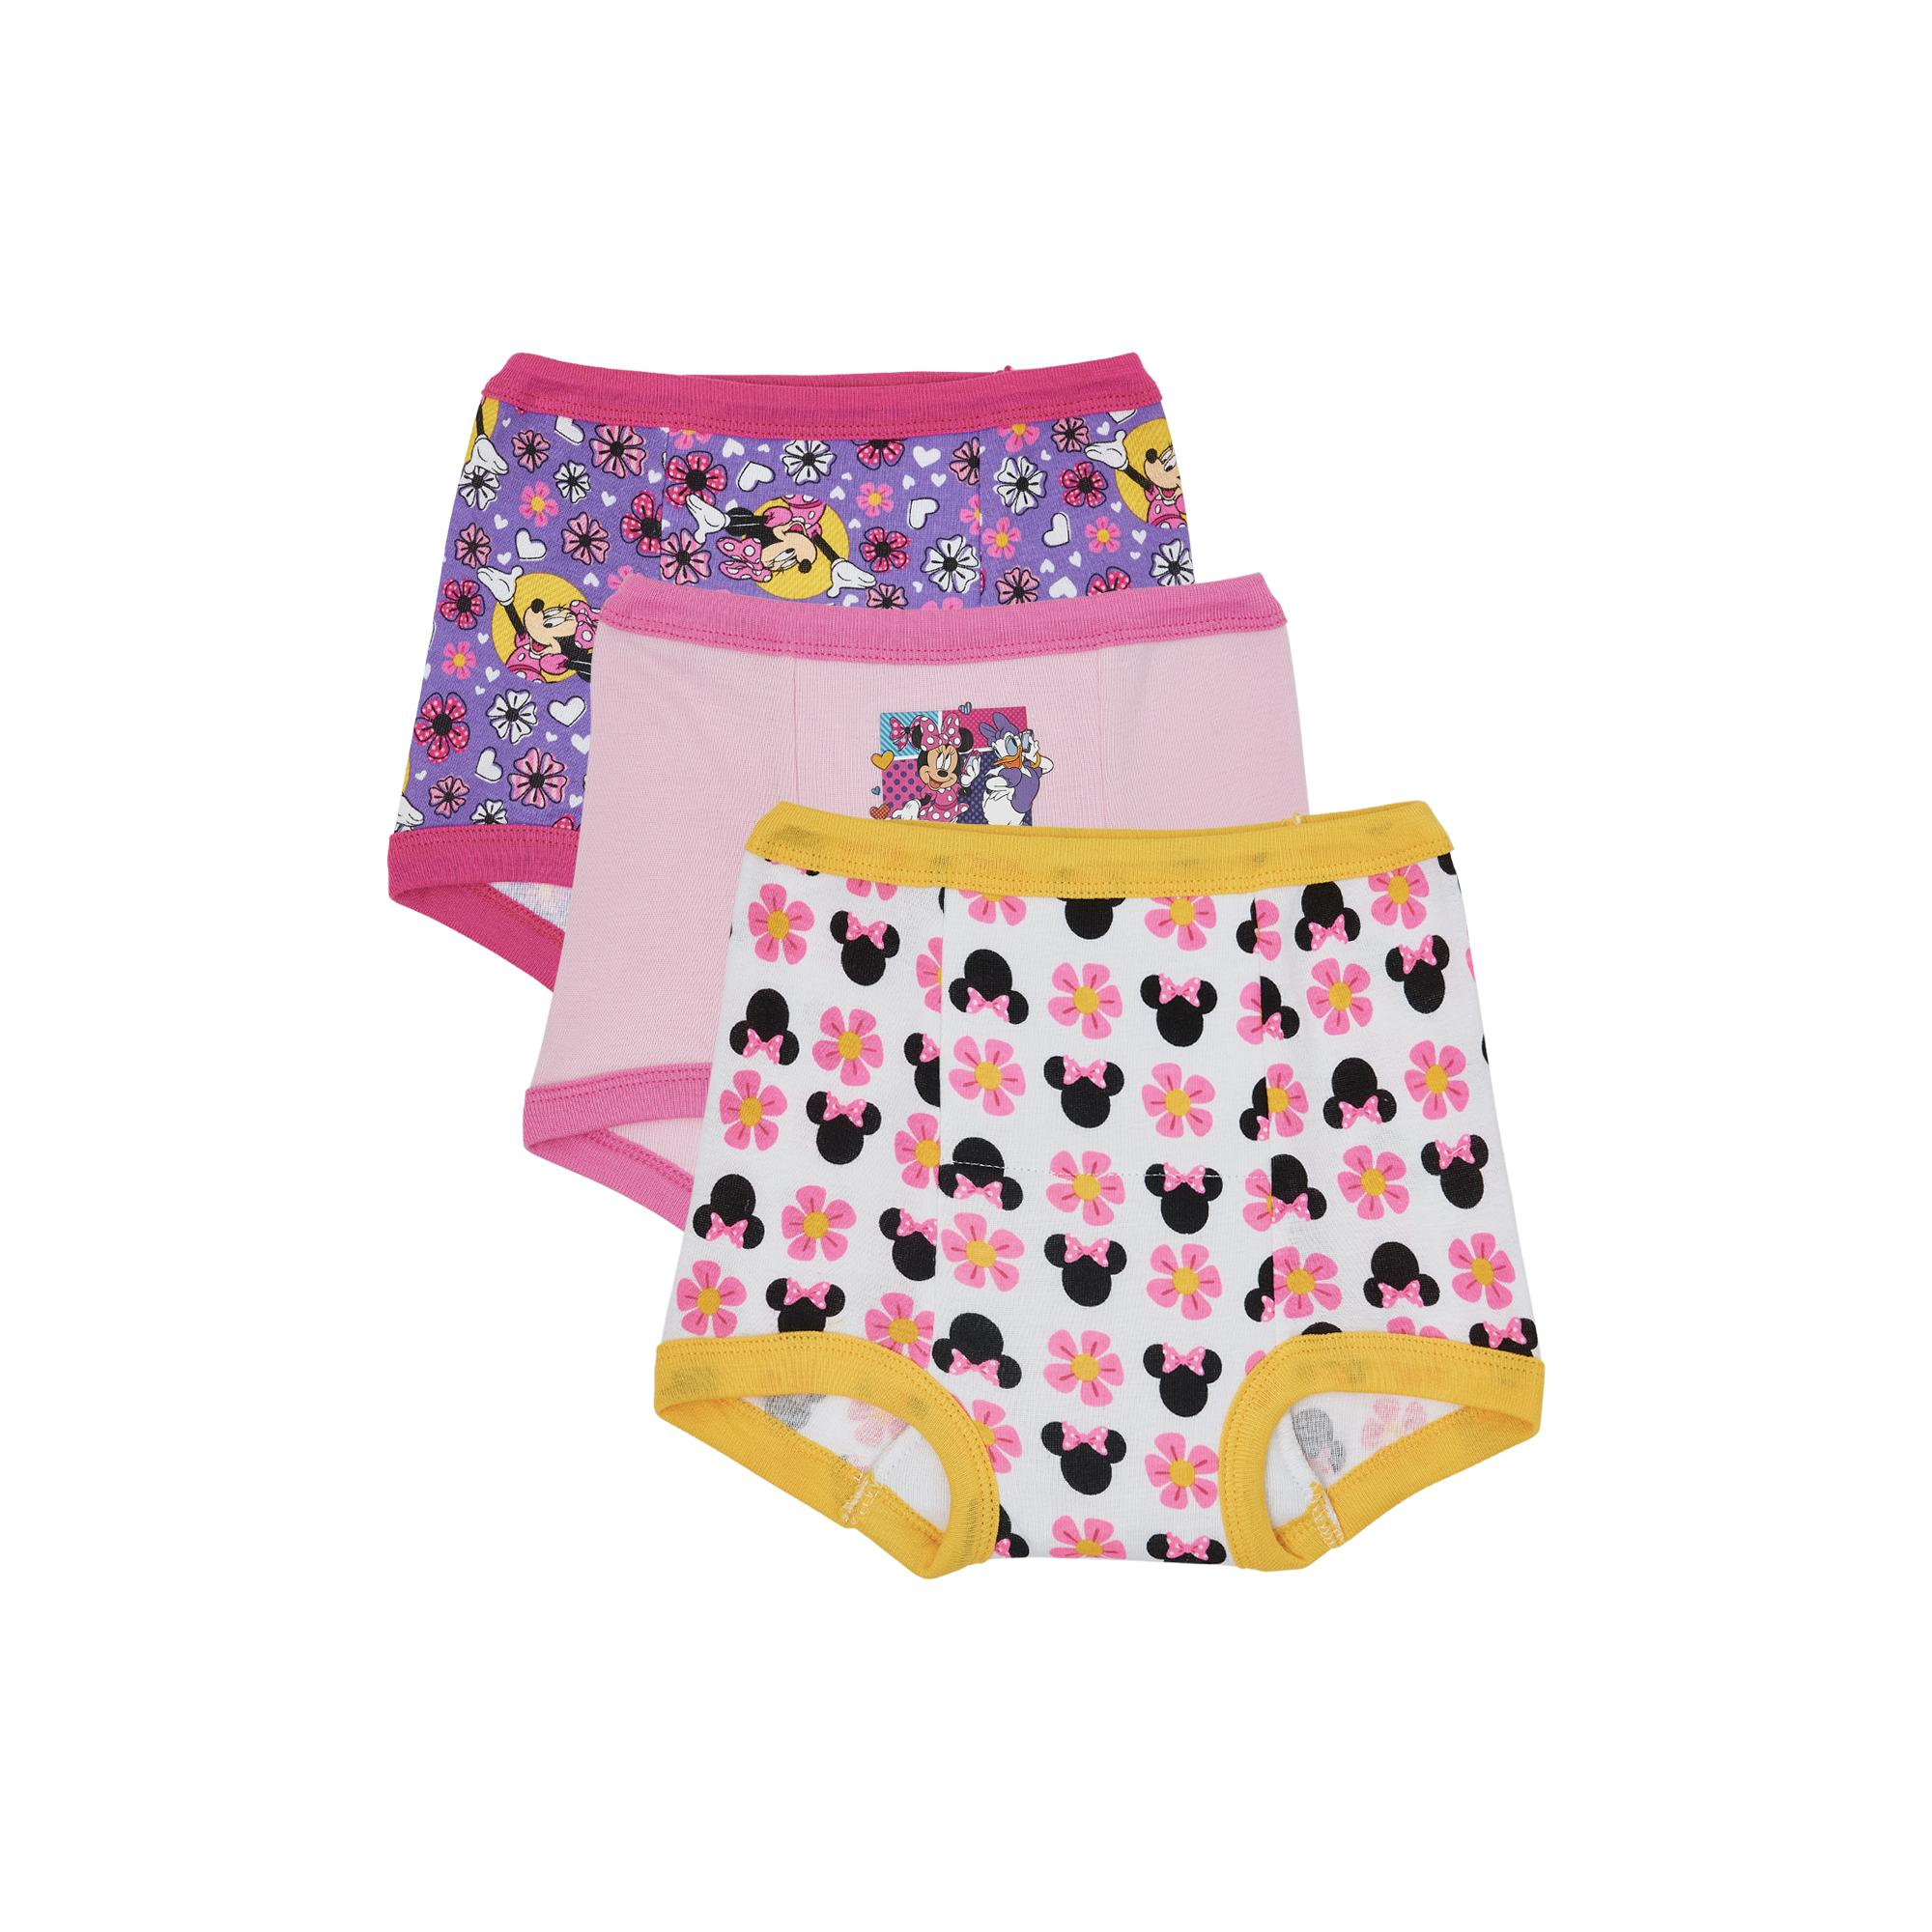 Minnie Mouse Toddler Girls' Training Pants, 3 Pack